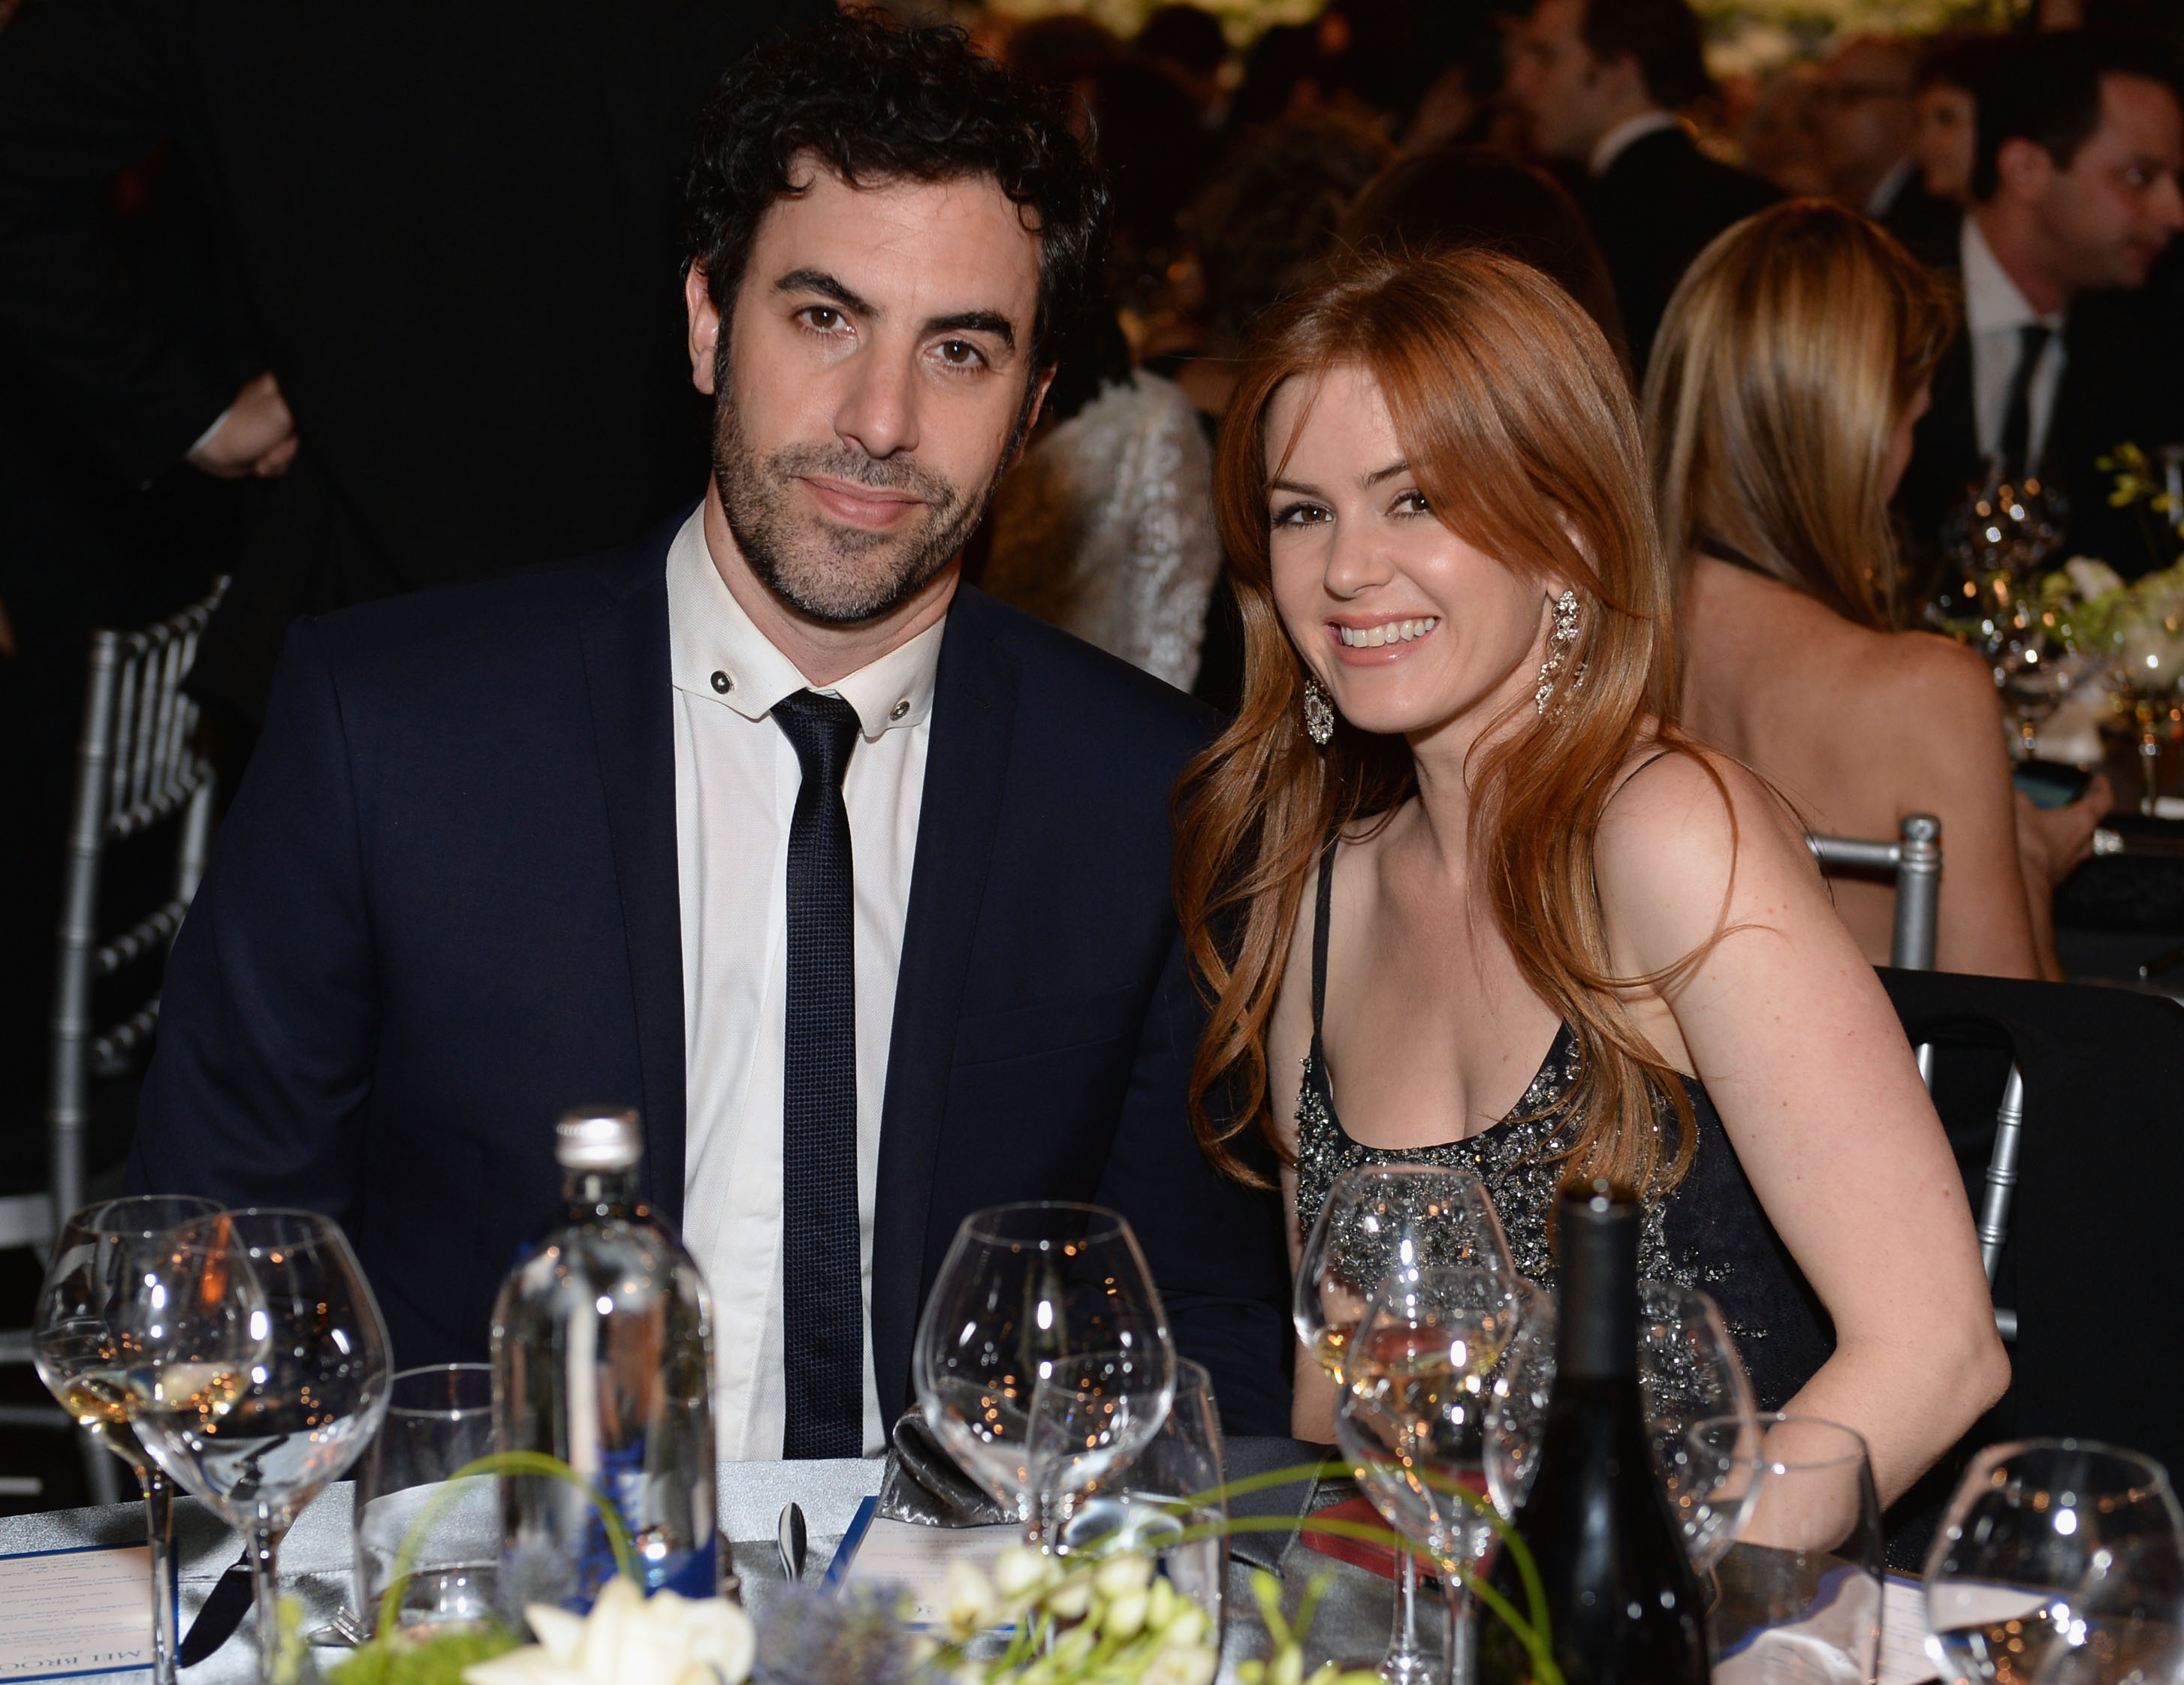 Actors Sacha Baron Cohen and Isla Fisher attend 41st AFI Life Achievement Award at Dolby Theatre on June 6, 2013 in Hollywood.